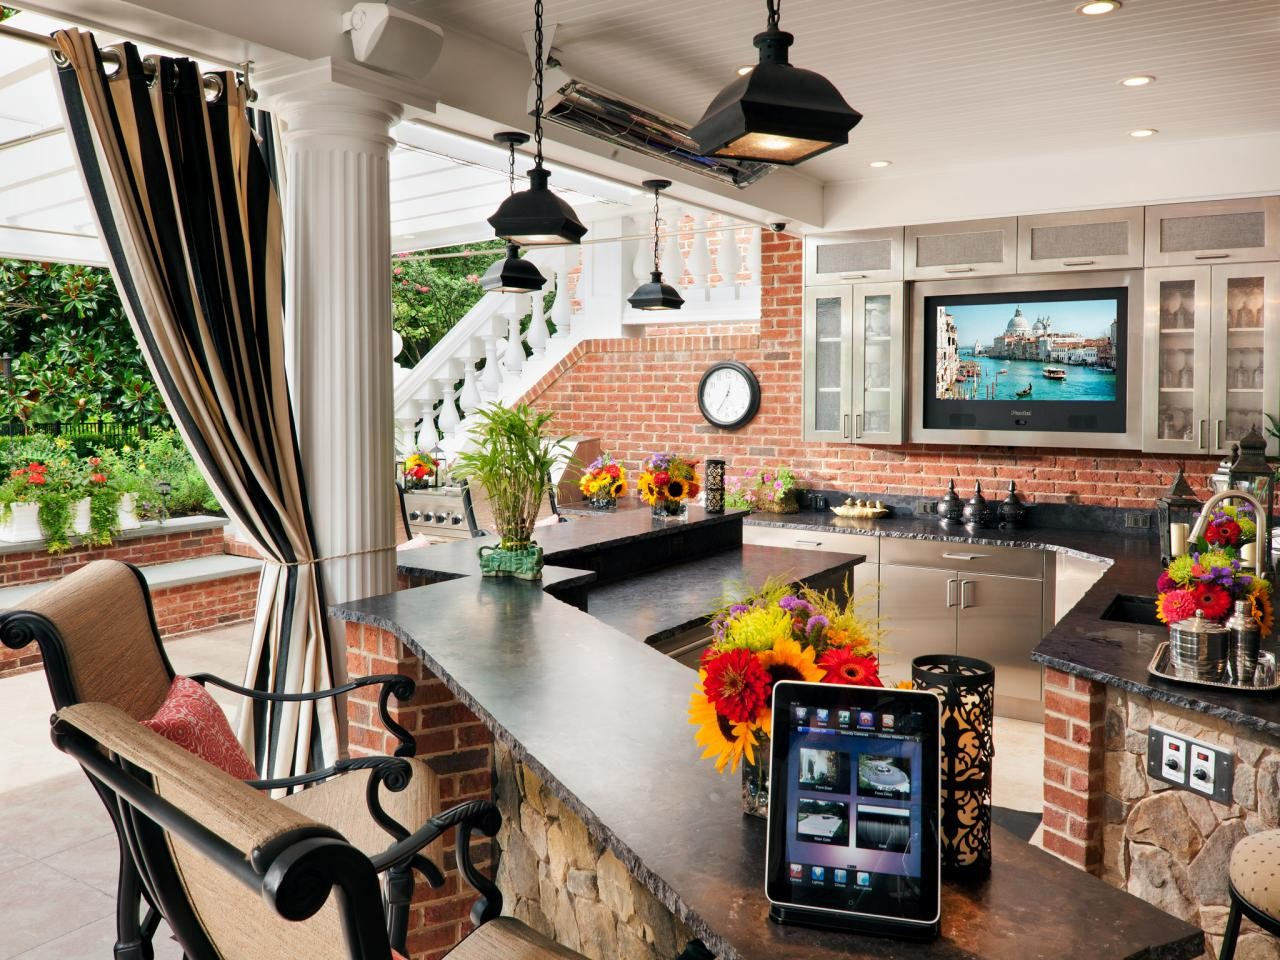 Home Automation System Reduces Labor Work Then Smart Structured Wiring View Larger Image